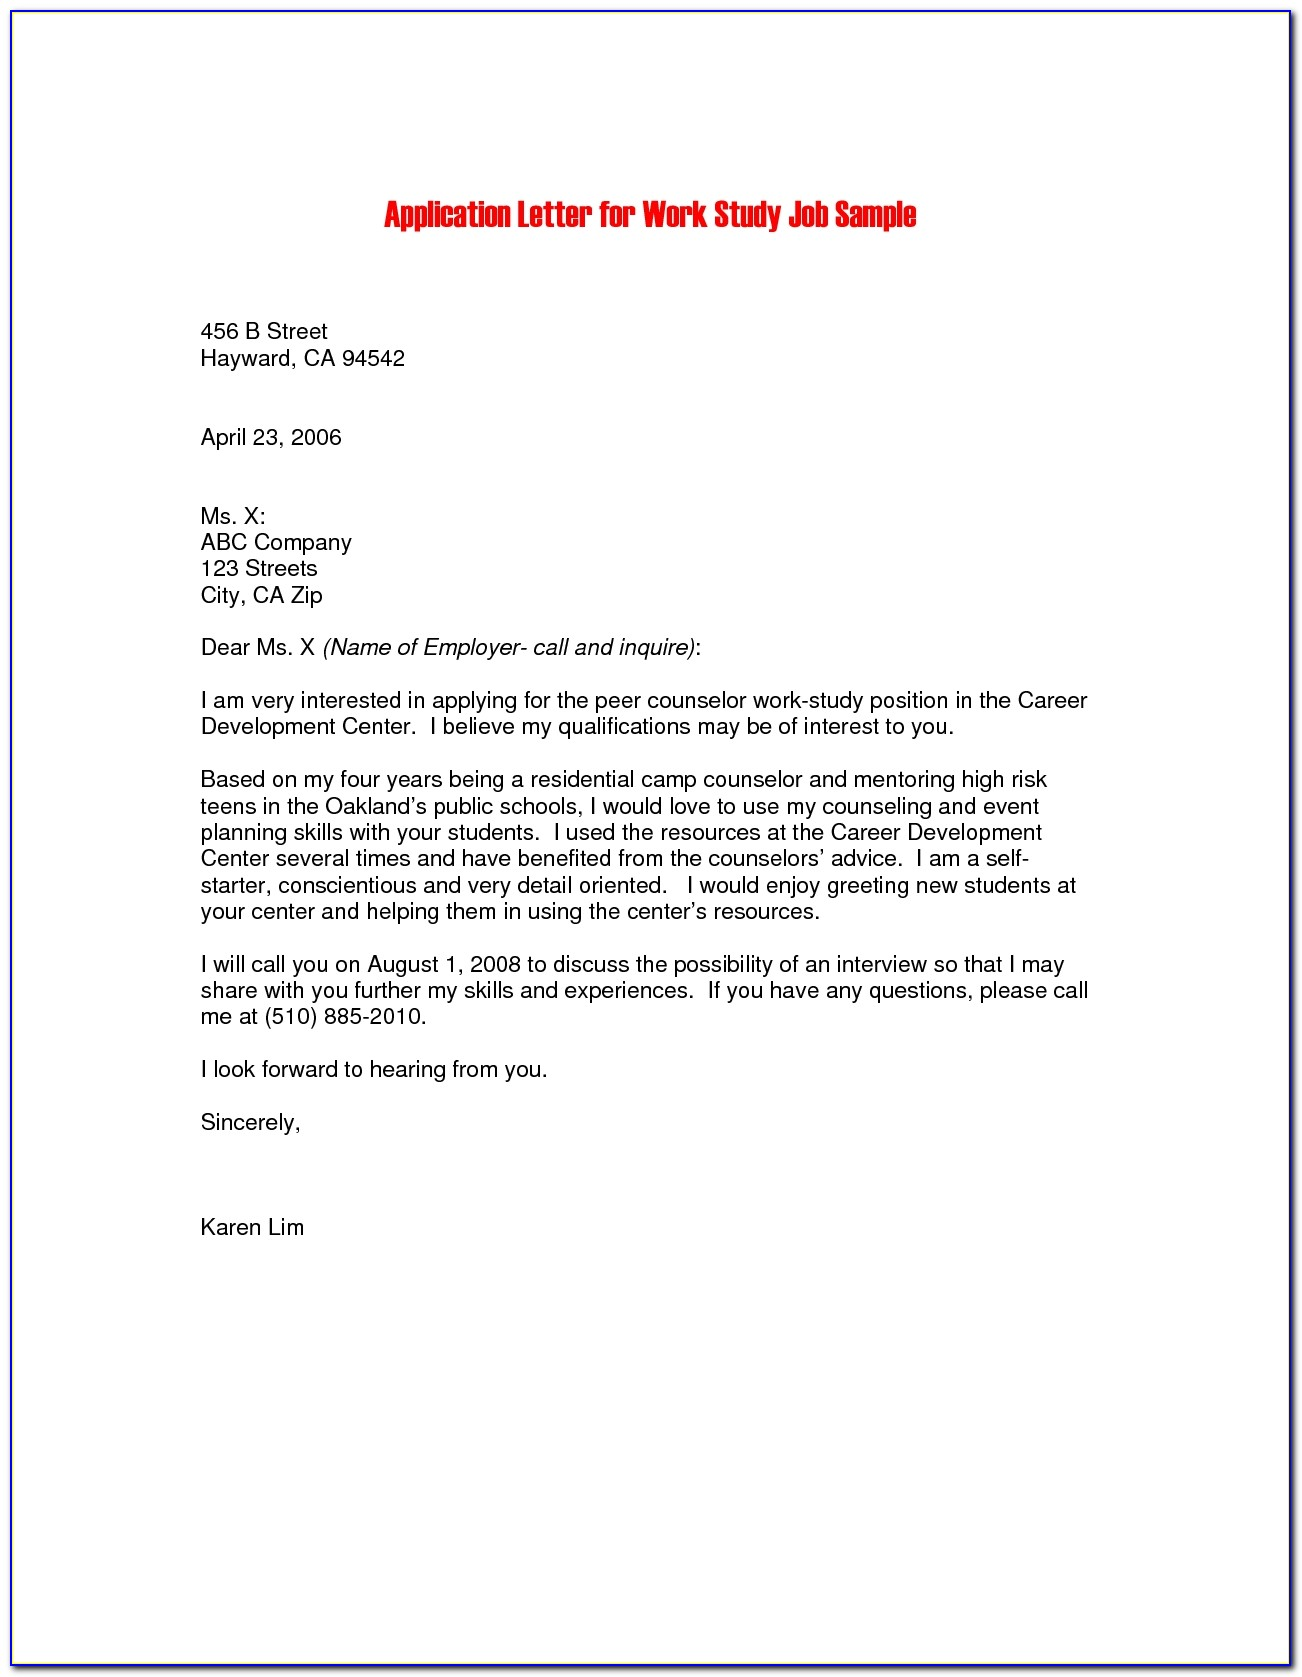 Sample Covering Letter For Job Application Email The Best Cover Letter For Job Application Pdf